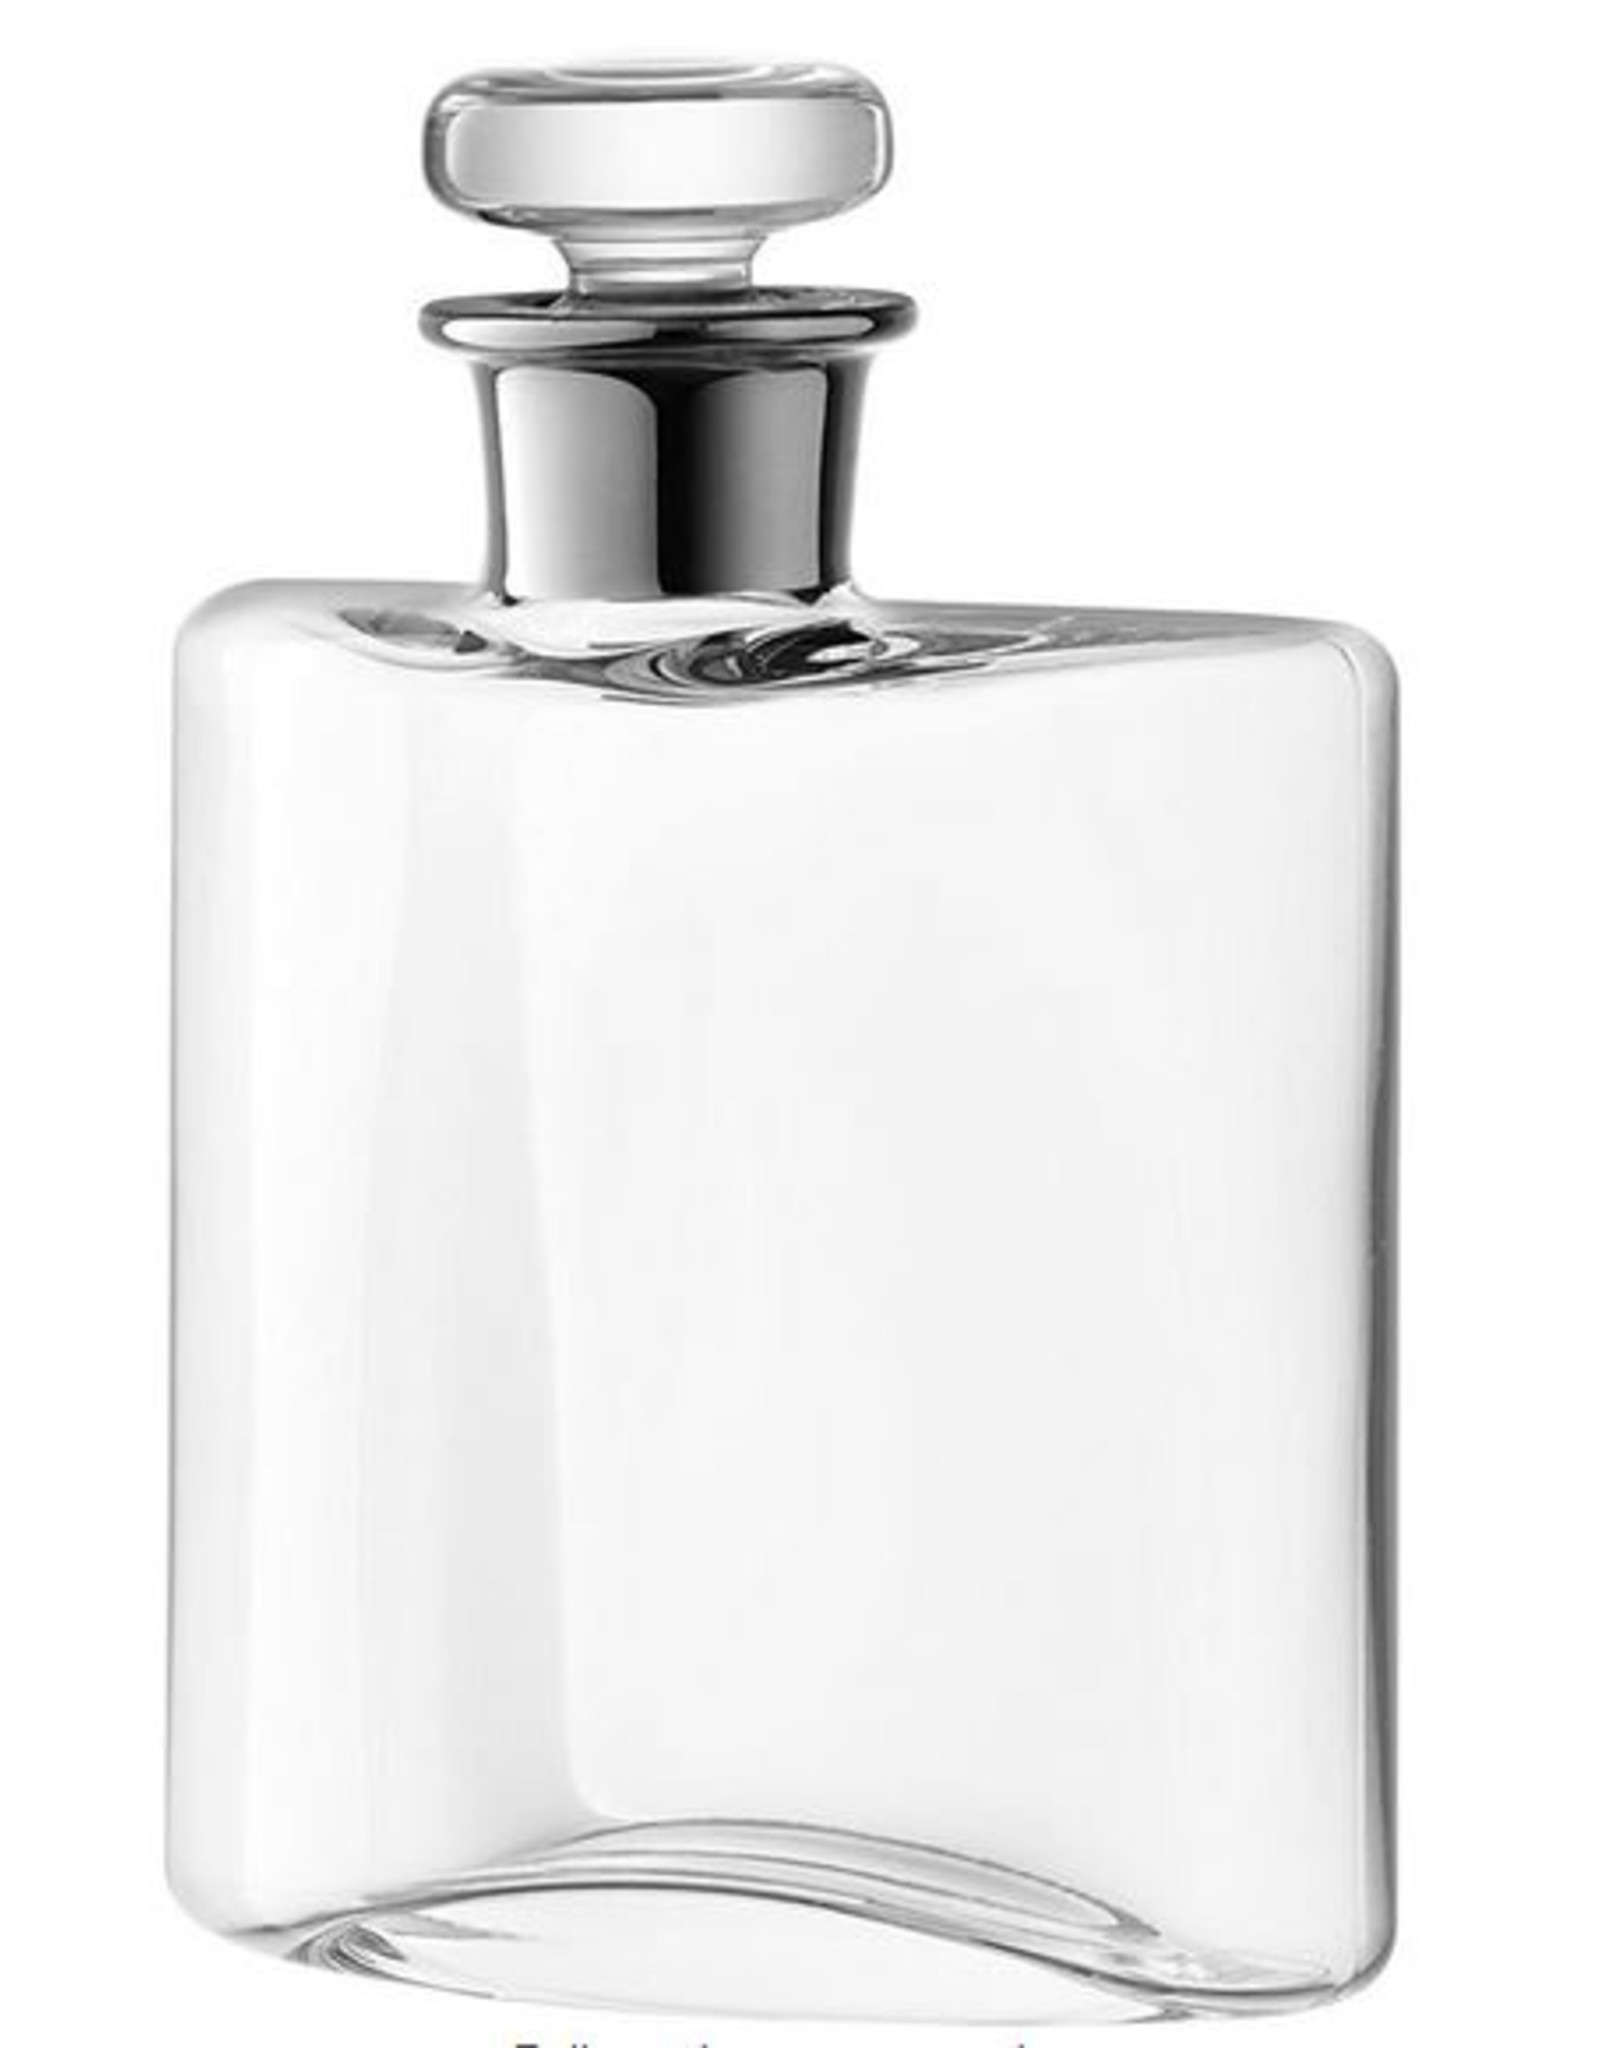 LSA Flask Decanter & Stopper 2pc